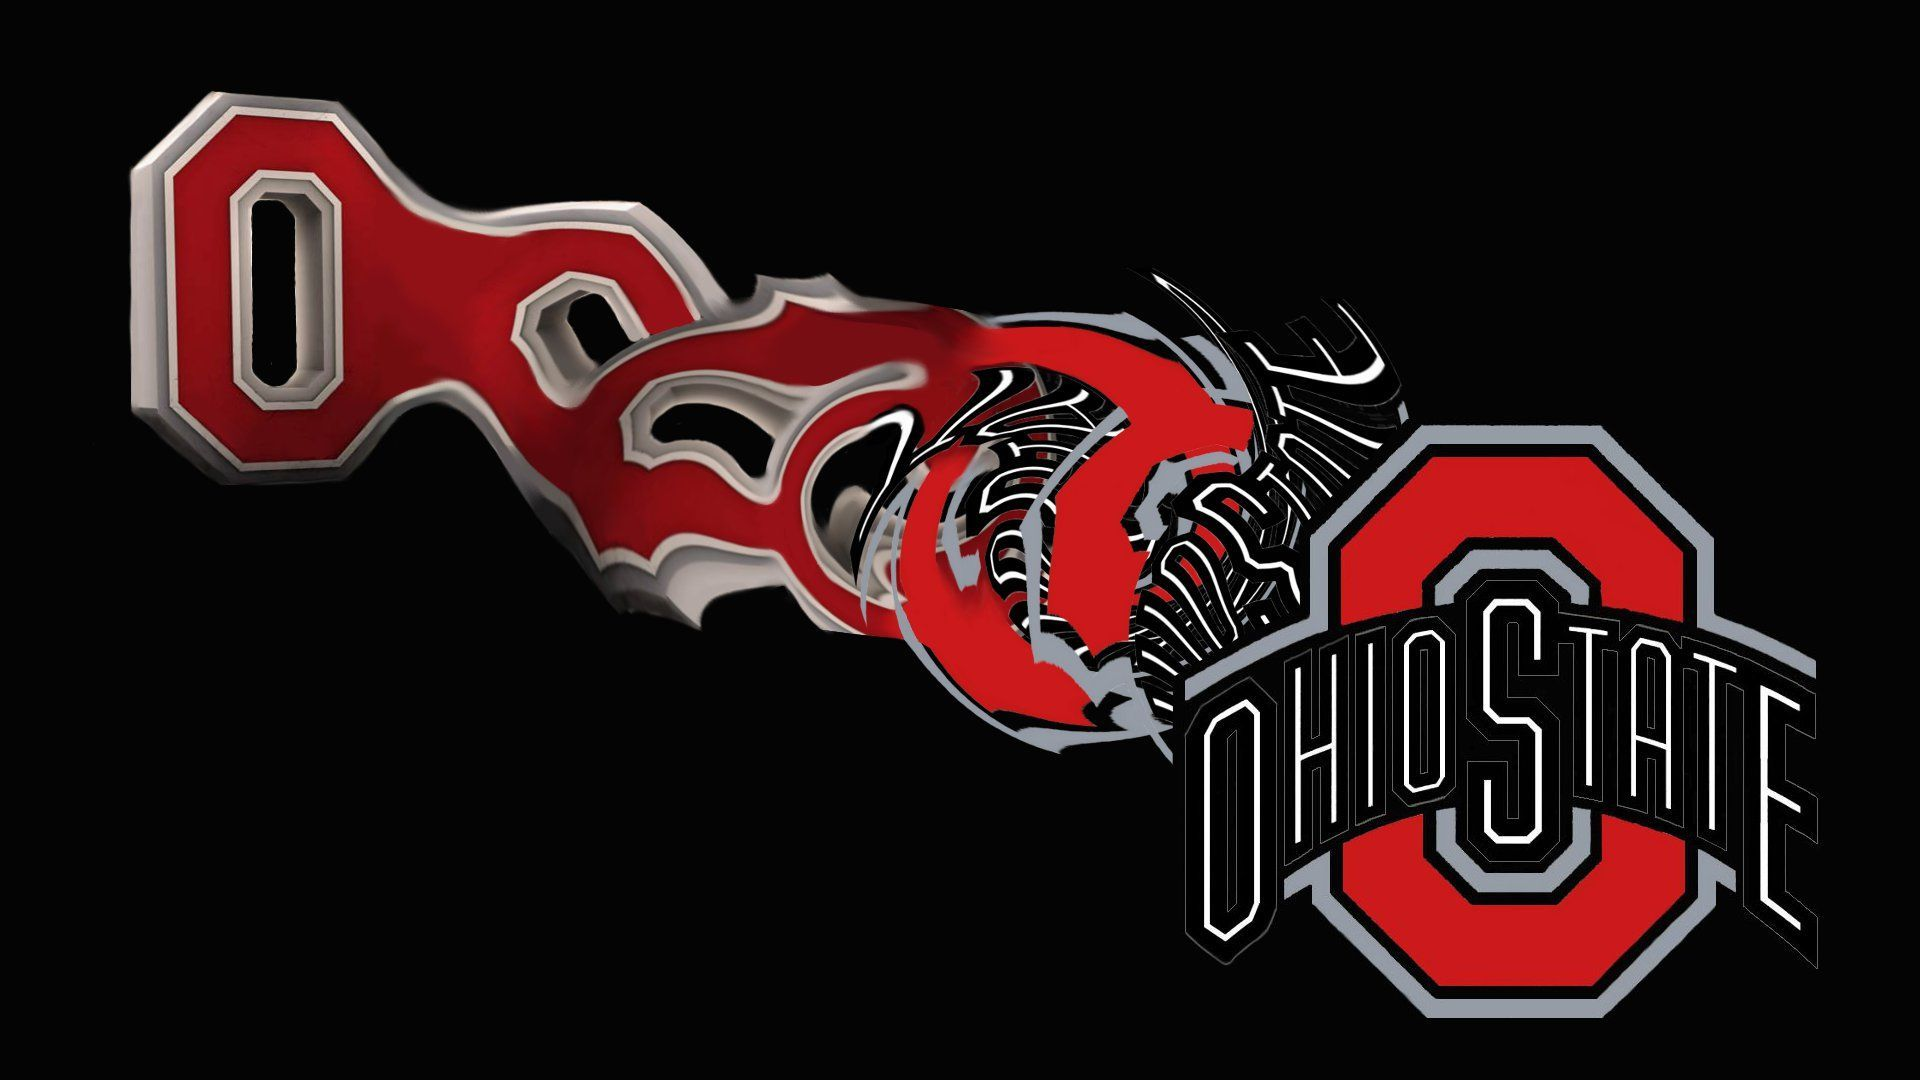 best images about OHIO STATE ipad Wallpapers on Pinterest